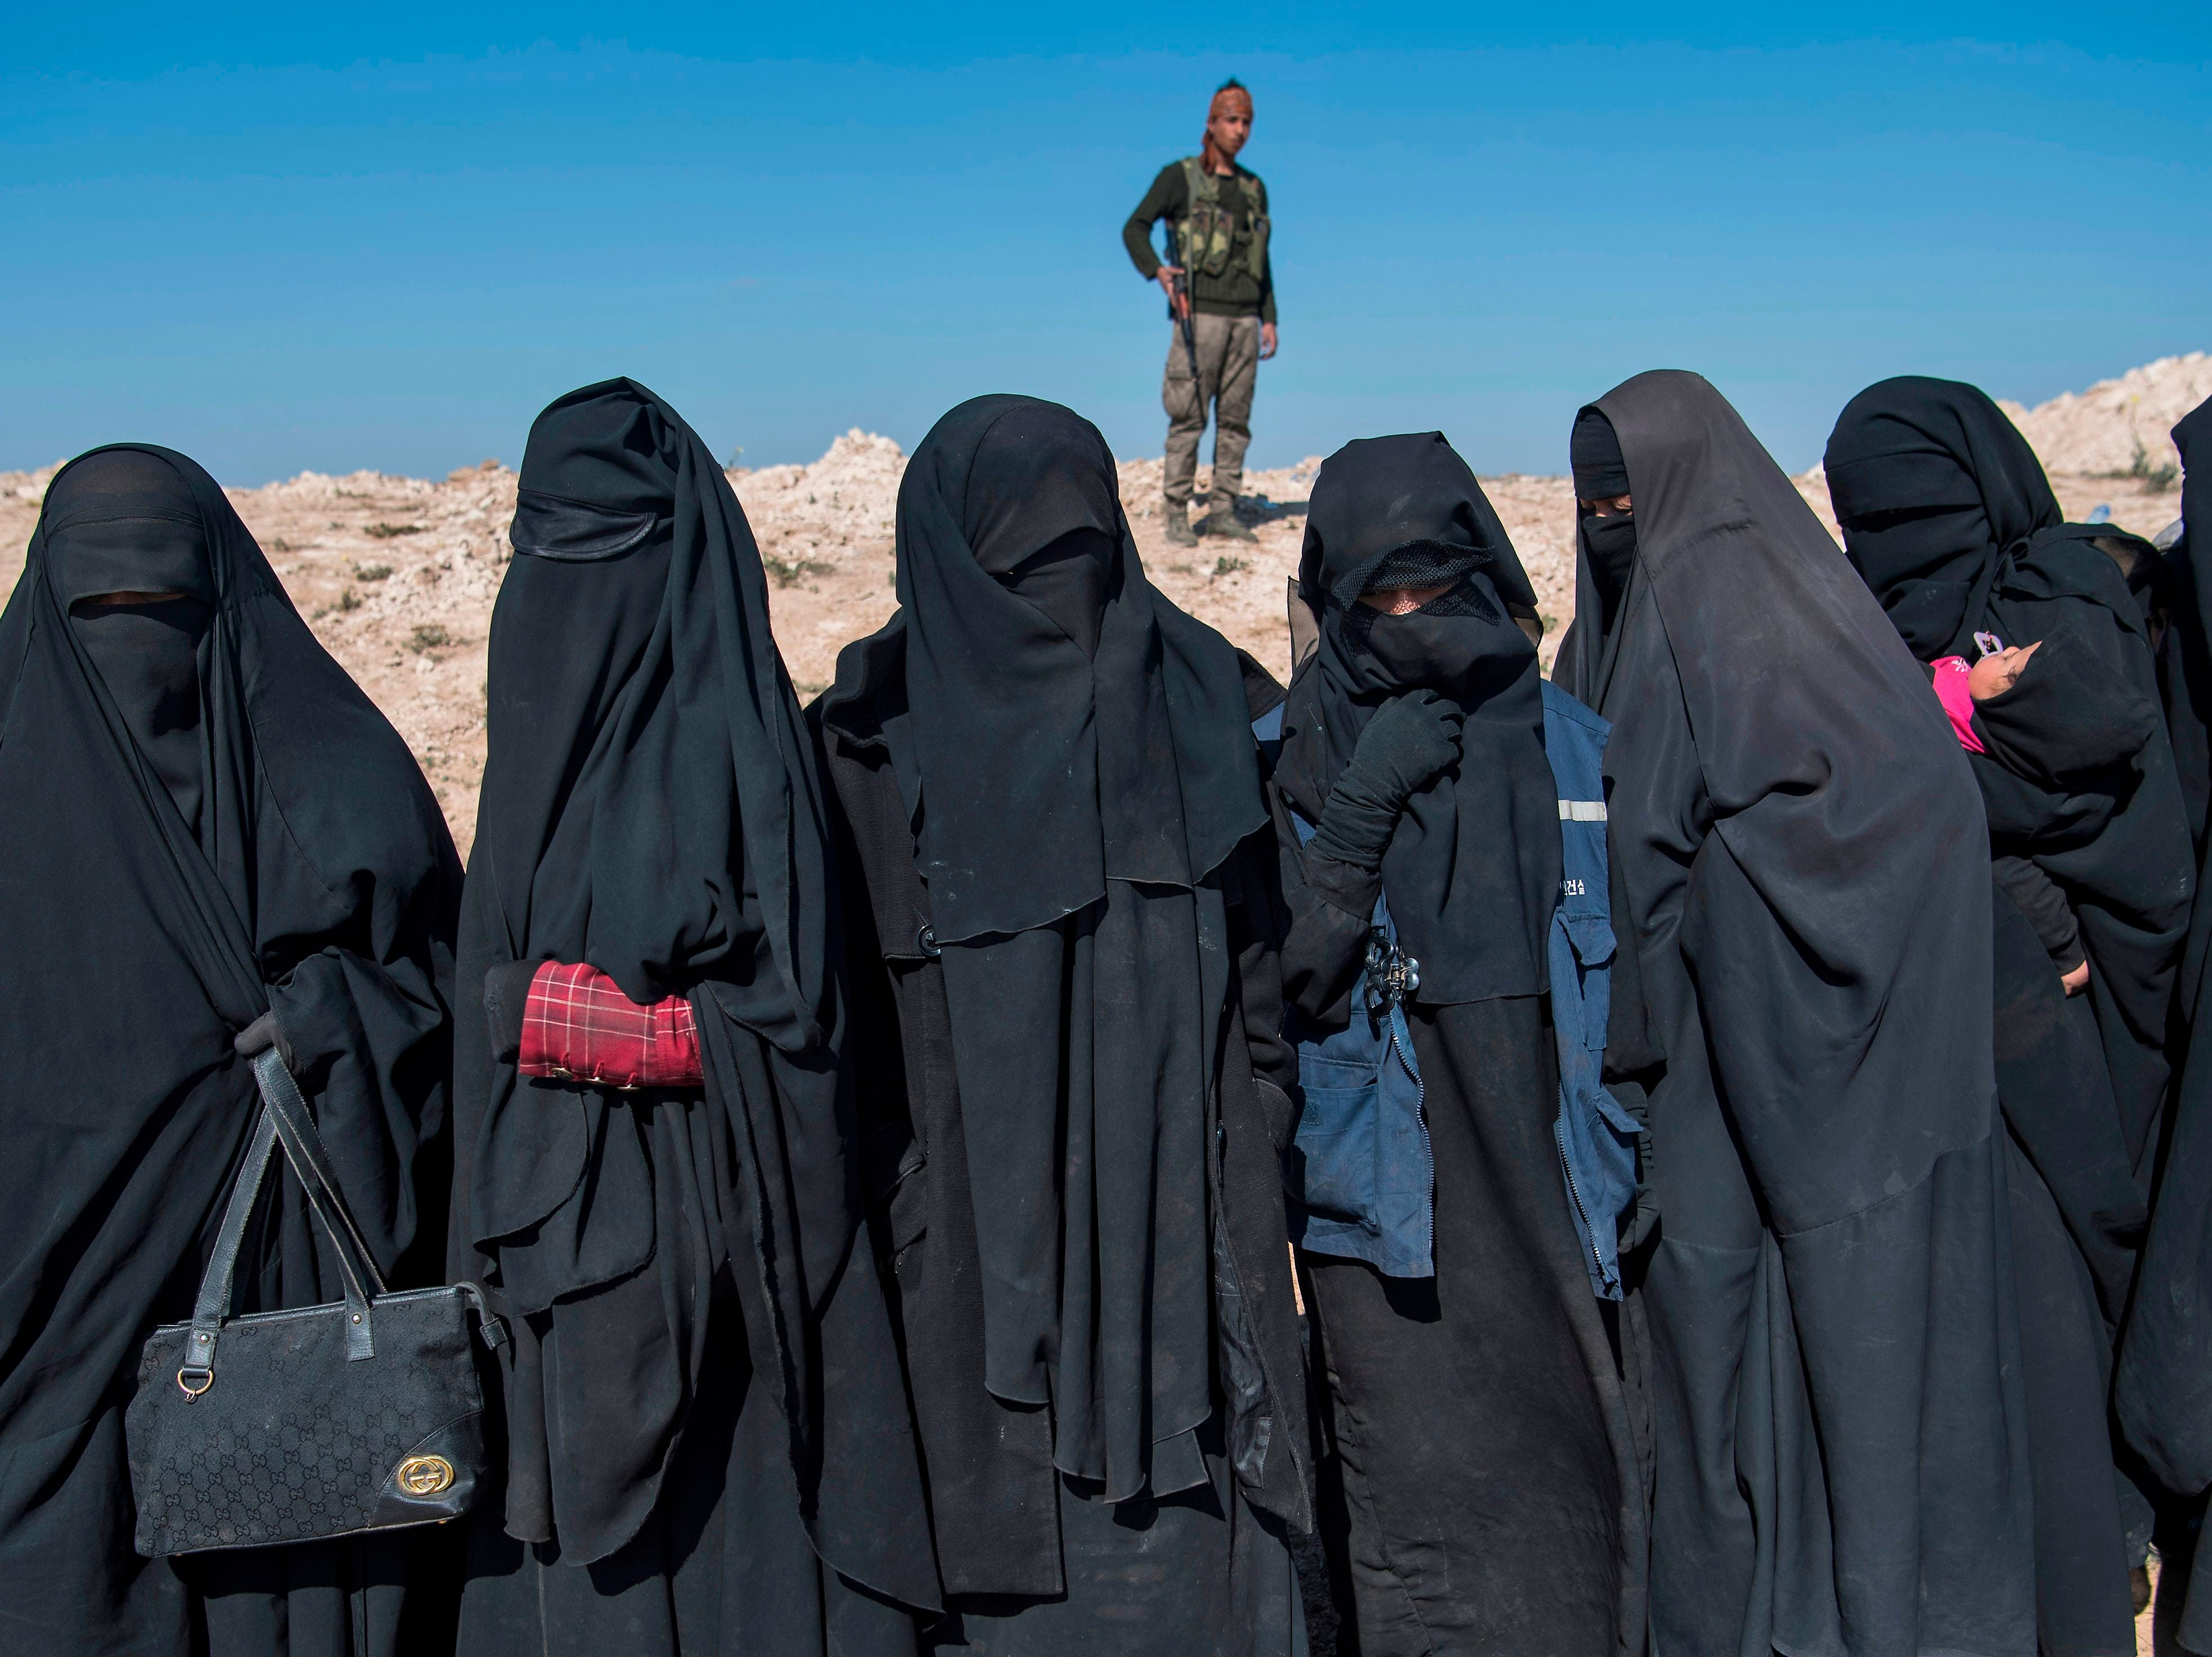 """A fighter with the U.S.-backed Syrian Democratic Forces keeps watch near veiled women standing on a field after they fled from the Baghouz area in the eastern Syrian province of Deir Ezzor on Feb. 12, 2019 during an operation to expel hundreds of Islamic State group  jihadists from the region. Syrian fighters backed by artillery fire from a U.S.-led coalition battled a fierce jihadist counteroffensive as they pushed to retake a last morsel of territory from the Islamic State group in an assault lasting days. More than four years after the extremists declared a """"caliphate"""" across large parts of Syria and neighboring Iraq, several offensives have whittled that down to a tiny scrap of land in eastern Syria."""